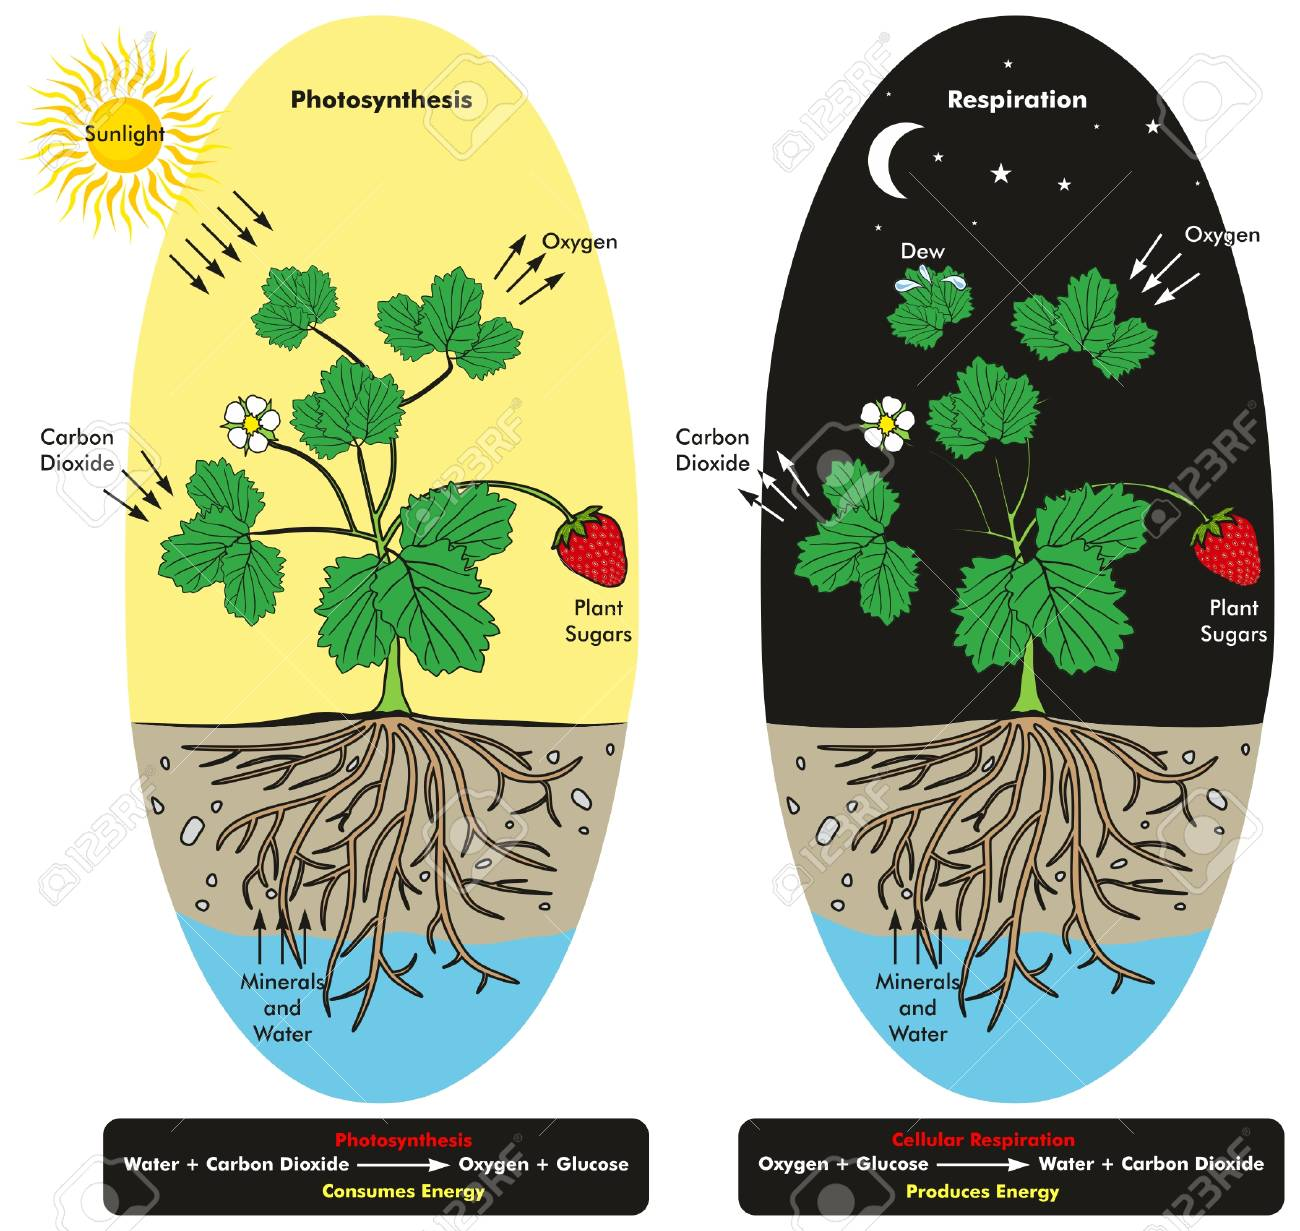 Photosynthesis and cellular respiration process of plant during photosynthesis and cellular respiration process of plant during day and night time infographic diagram showing comparison ccuart Images